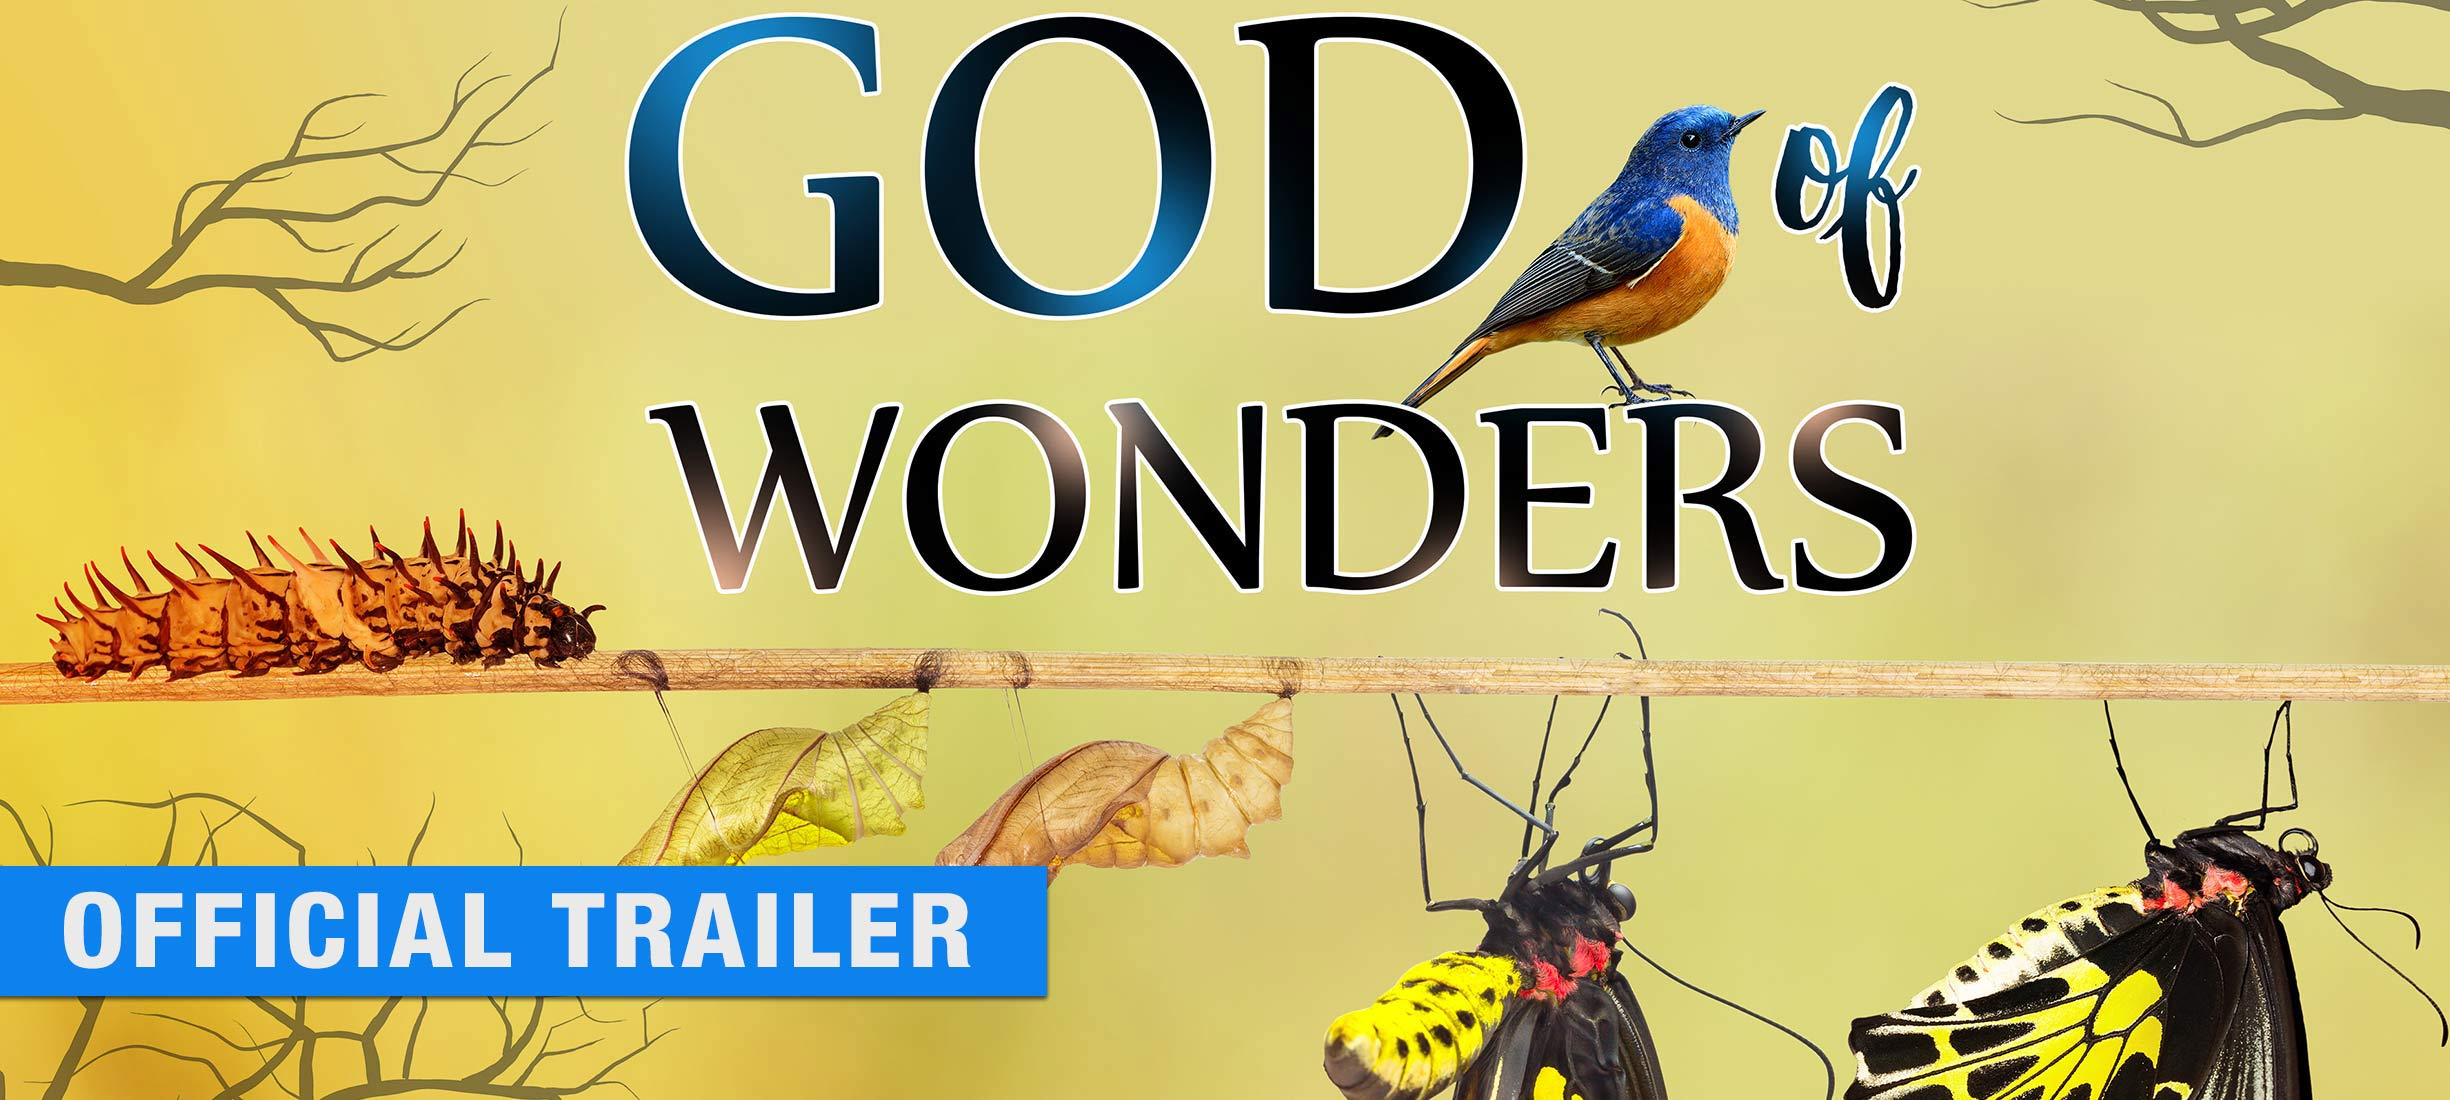 God of Wonders - Official Trailer